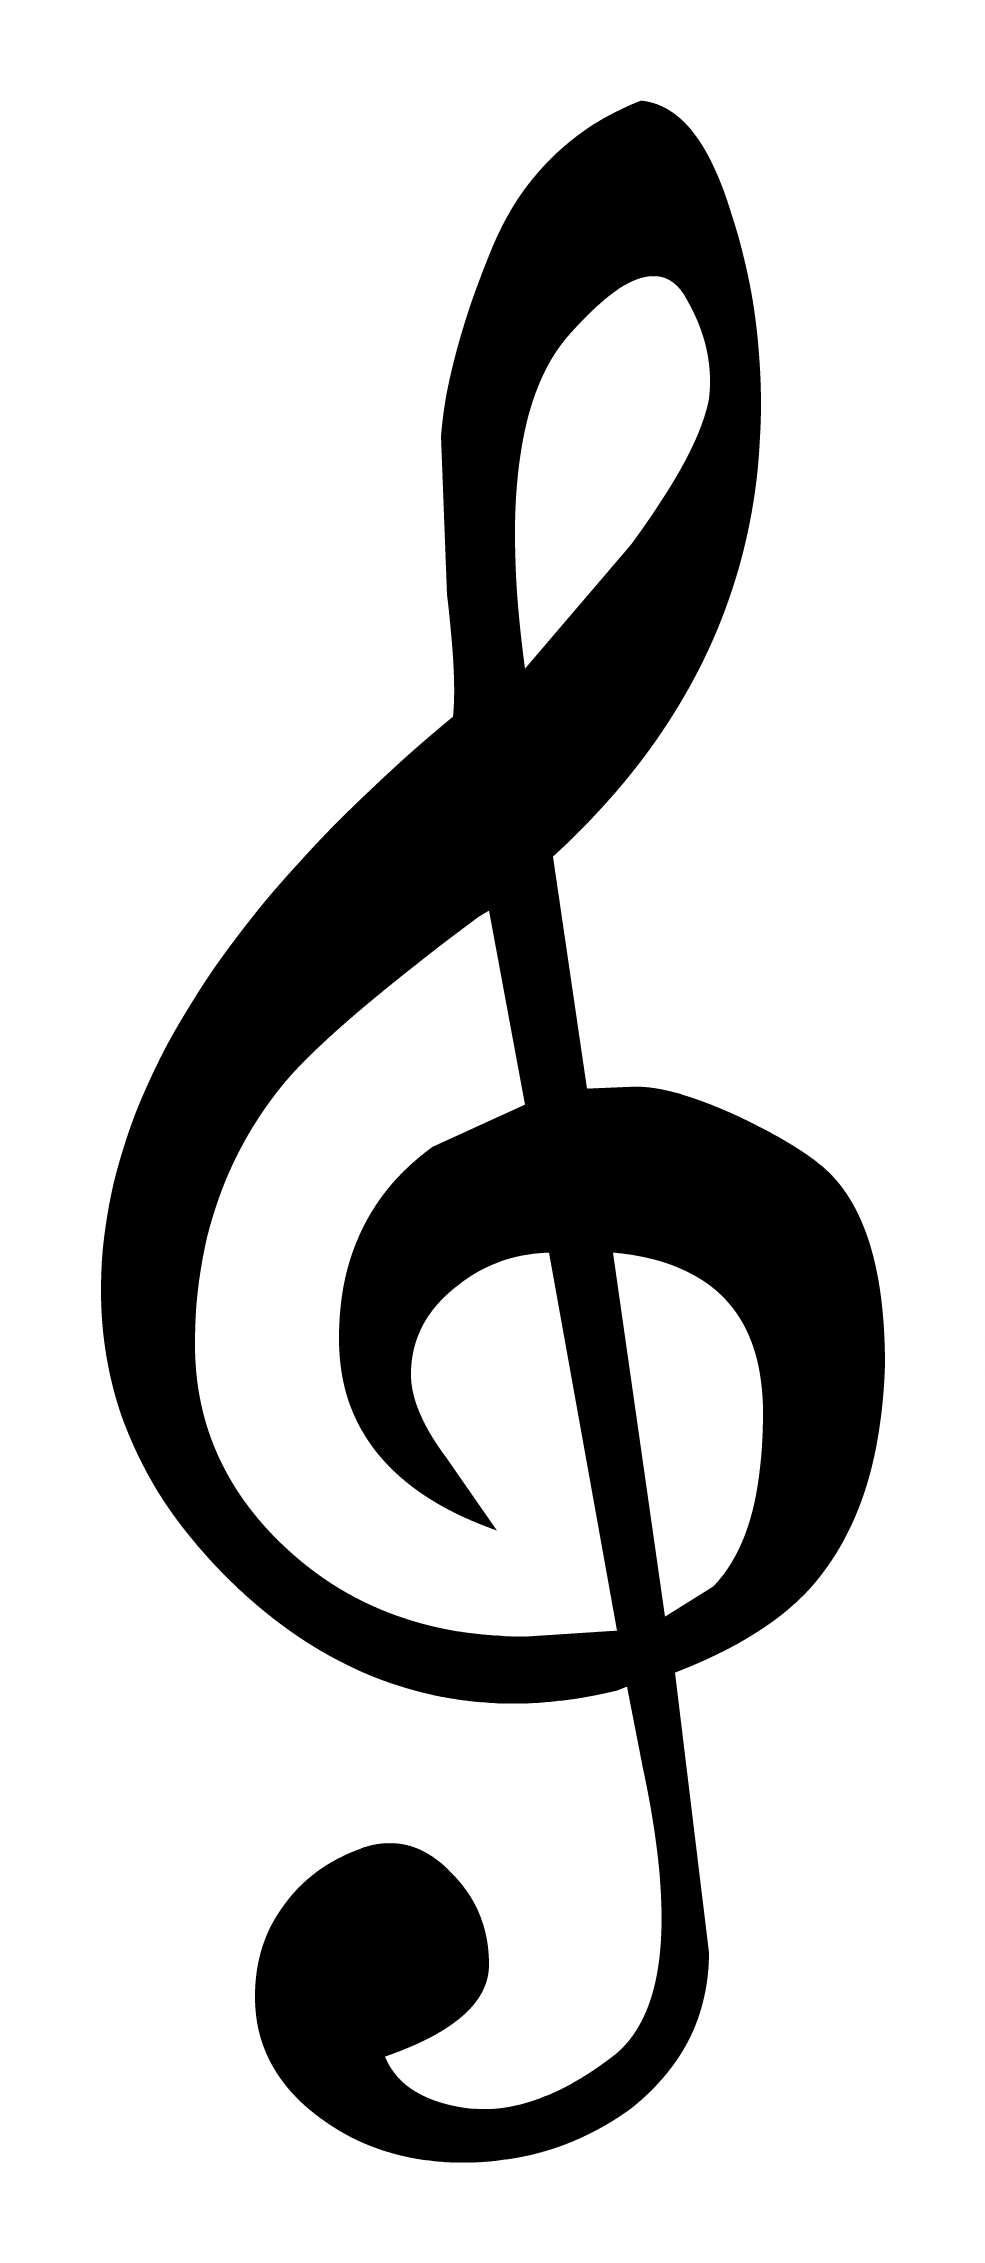 Treble note png. Pictures of clefs image